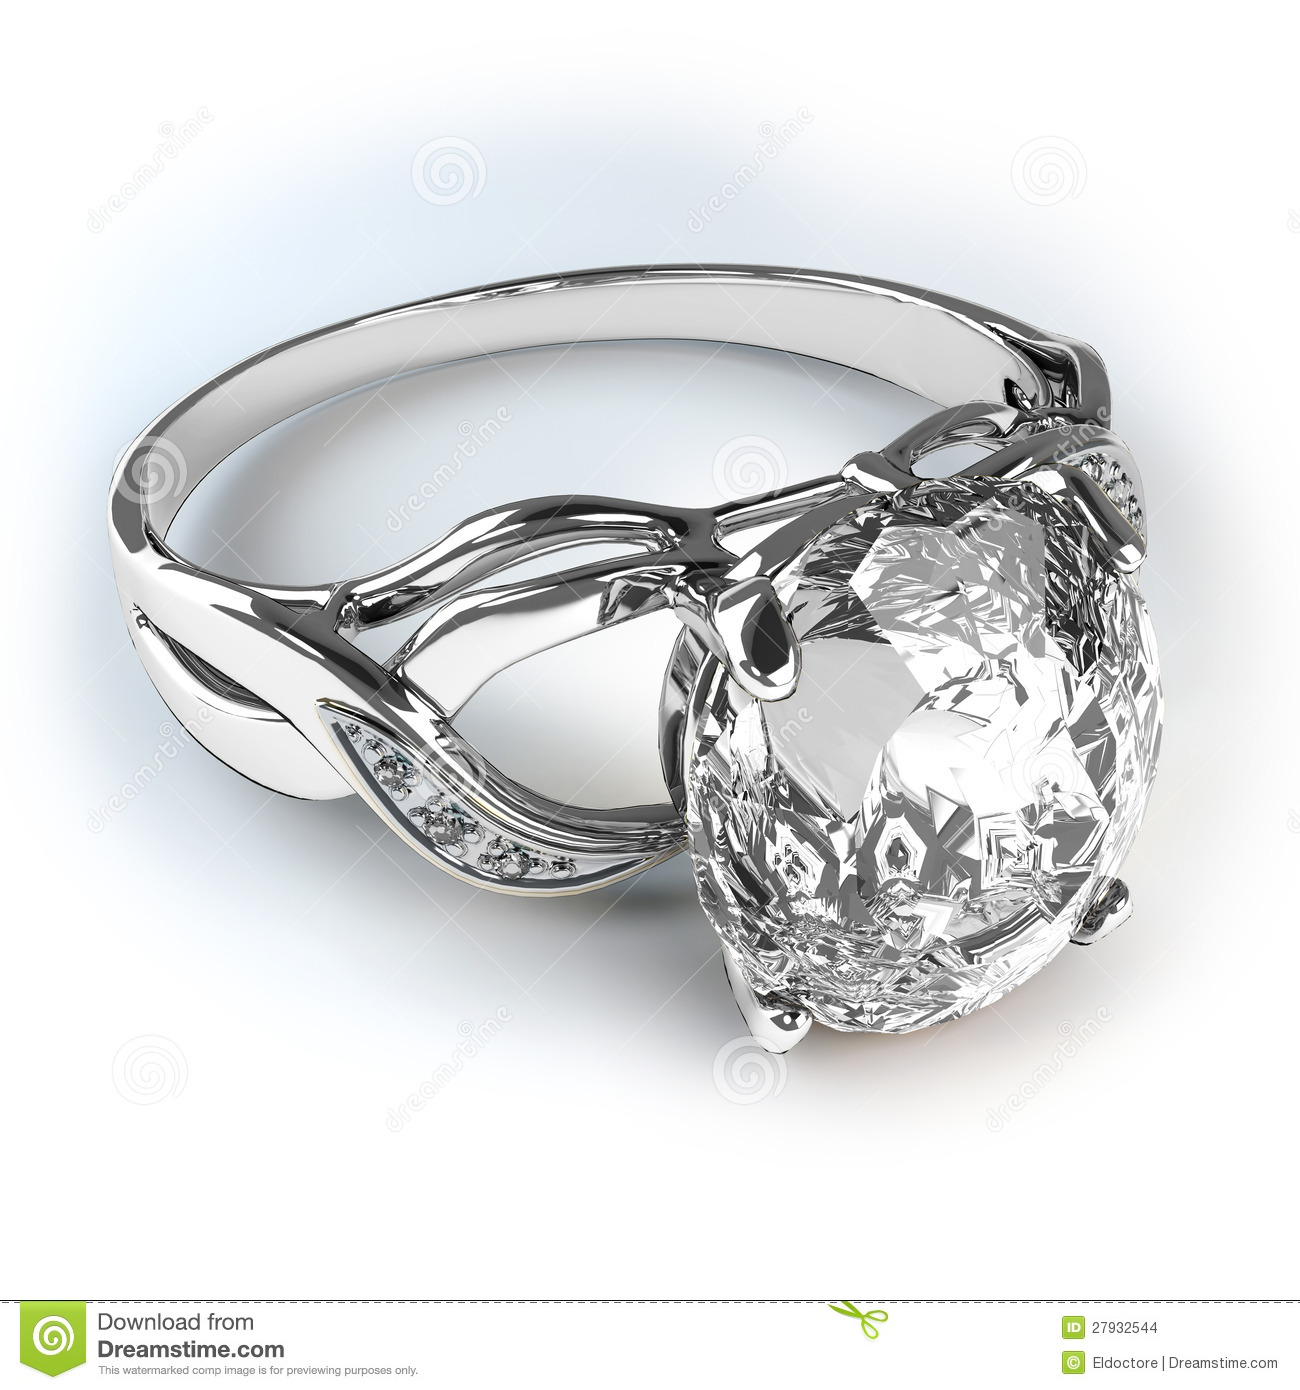 More similar stock images of ` Wedding silver diamond ring `